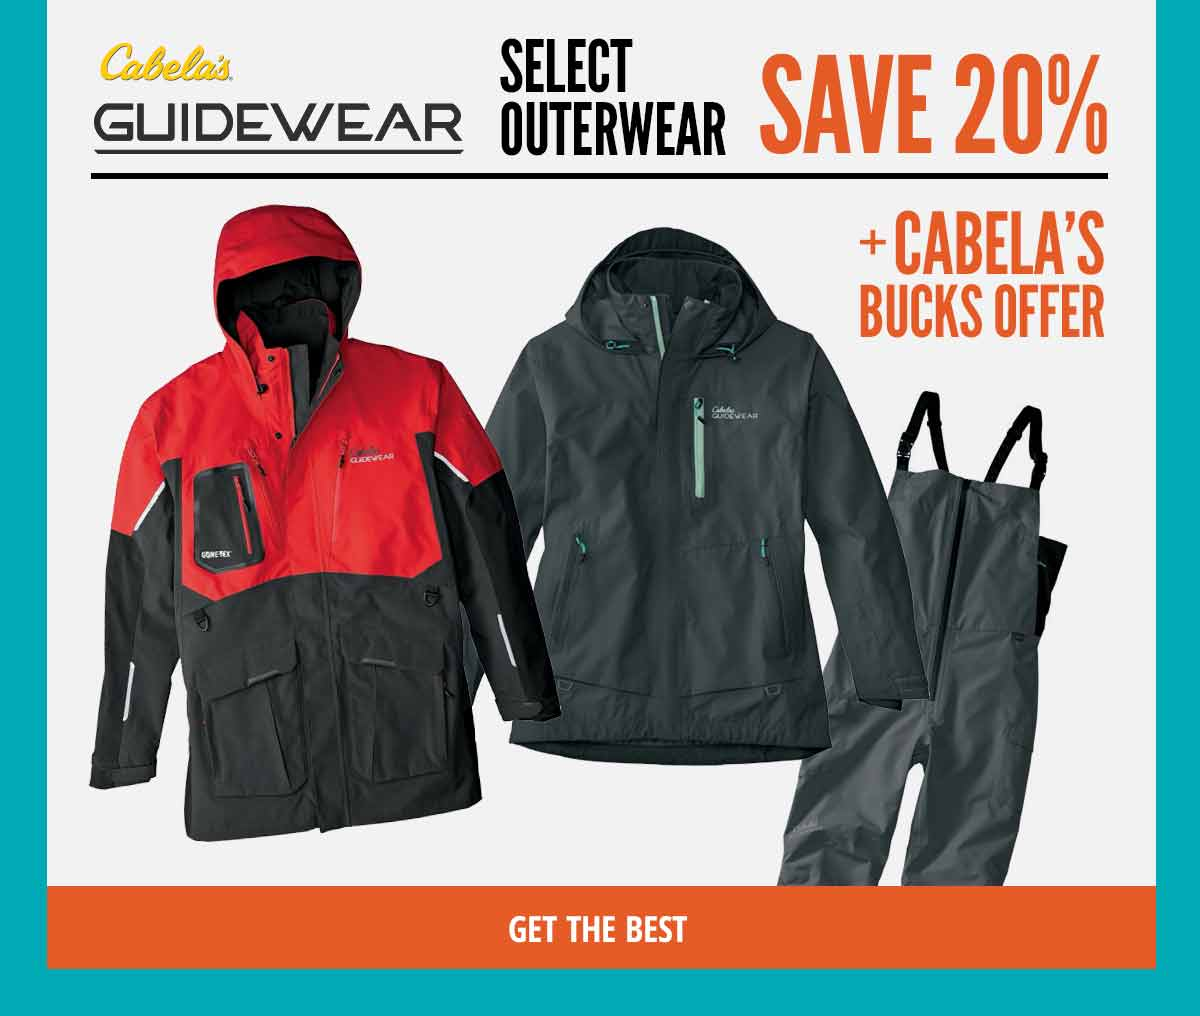 Save 20% on Guidewear